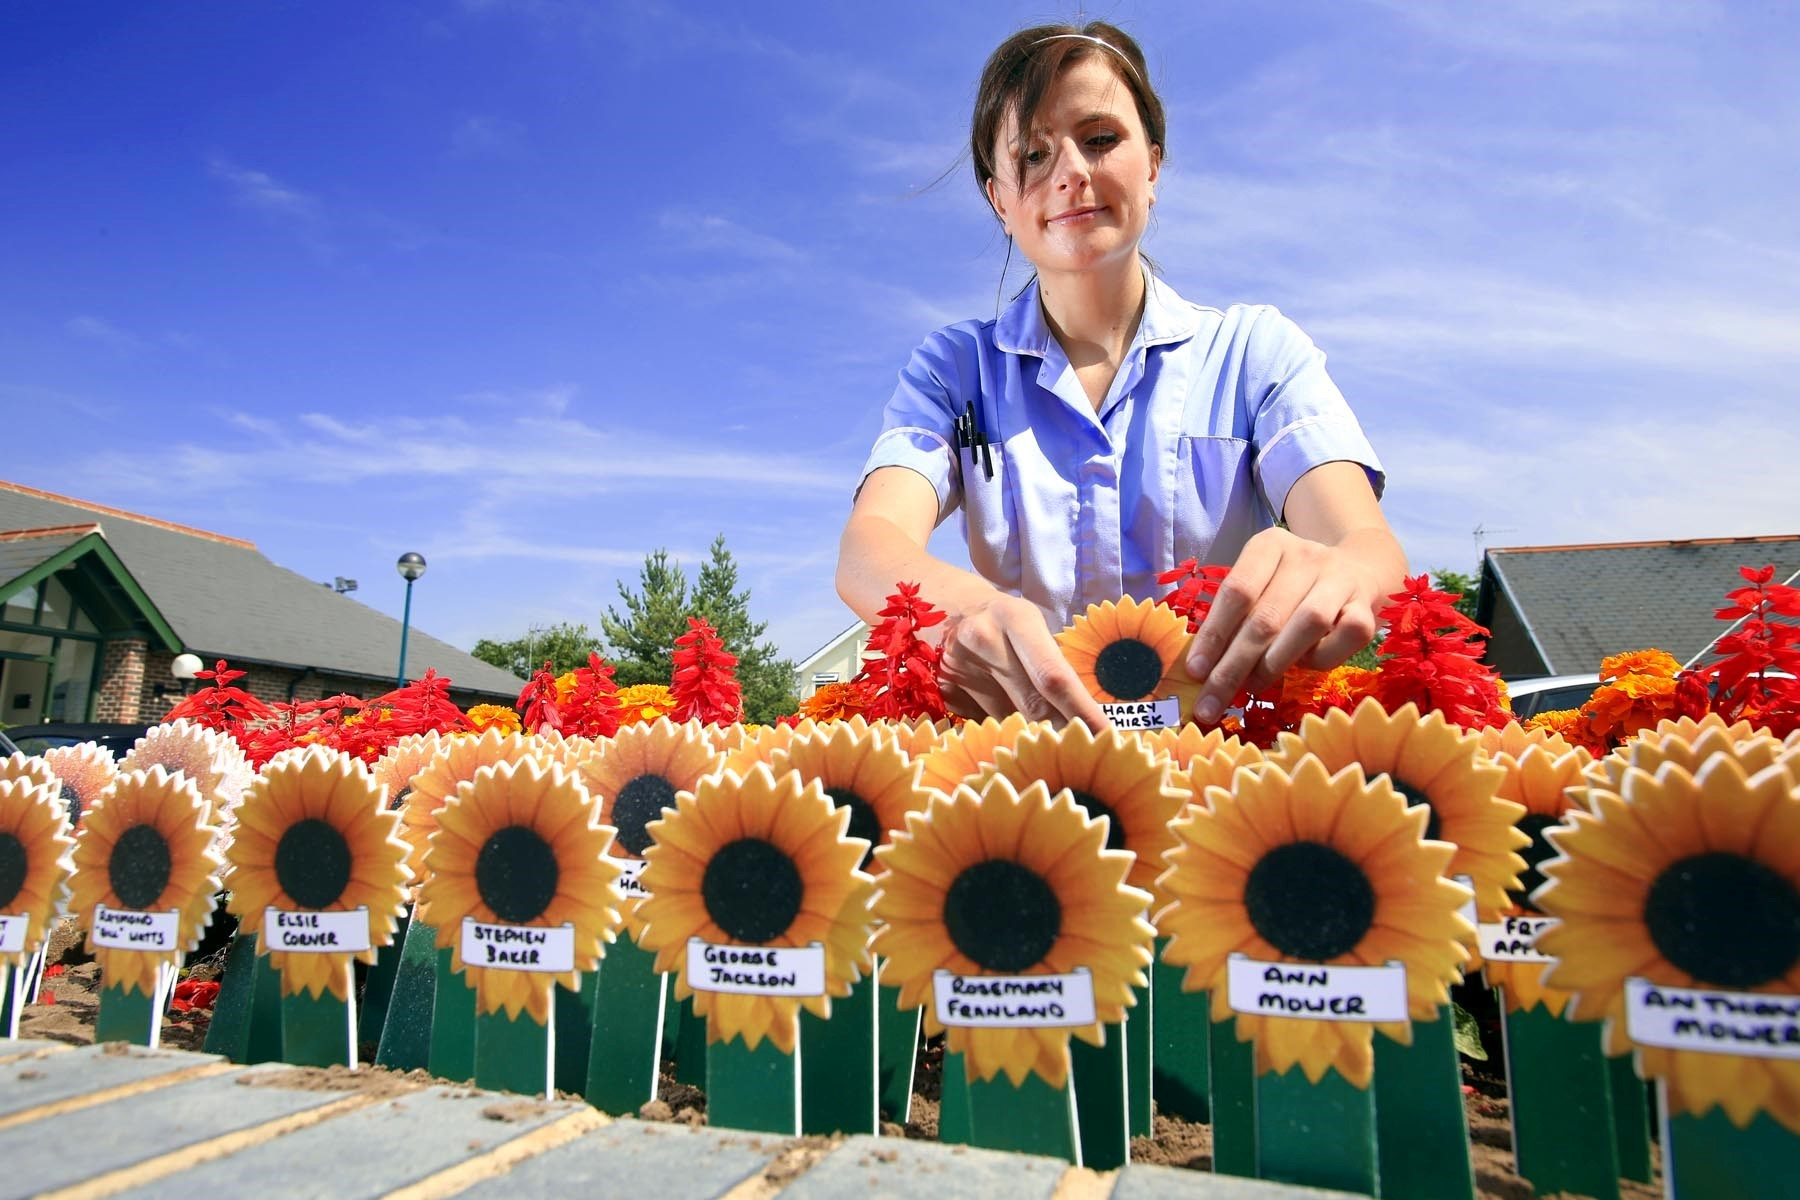 Sunflower appeal to celebrate a loved one's memory